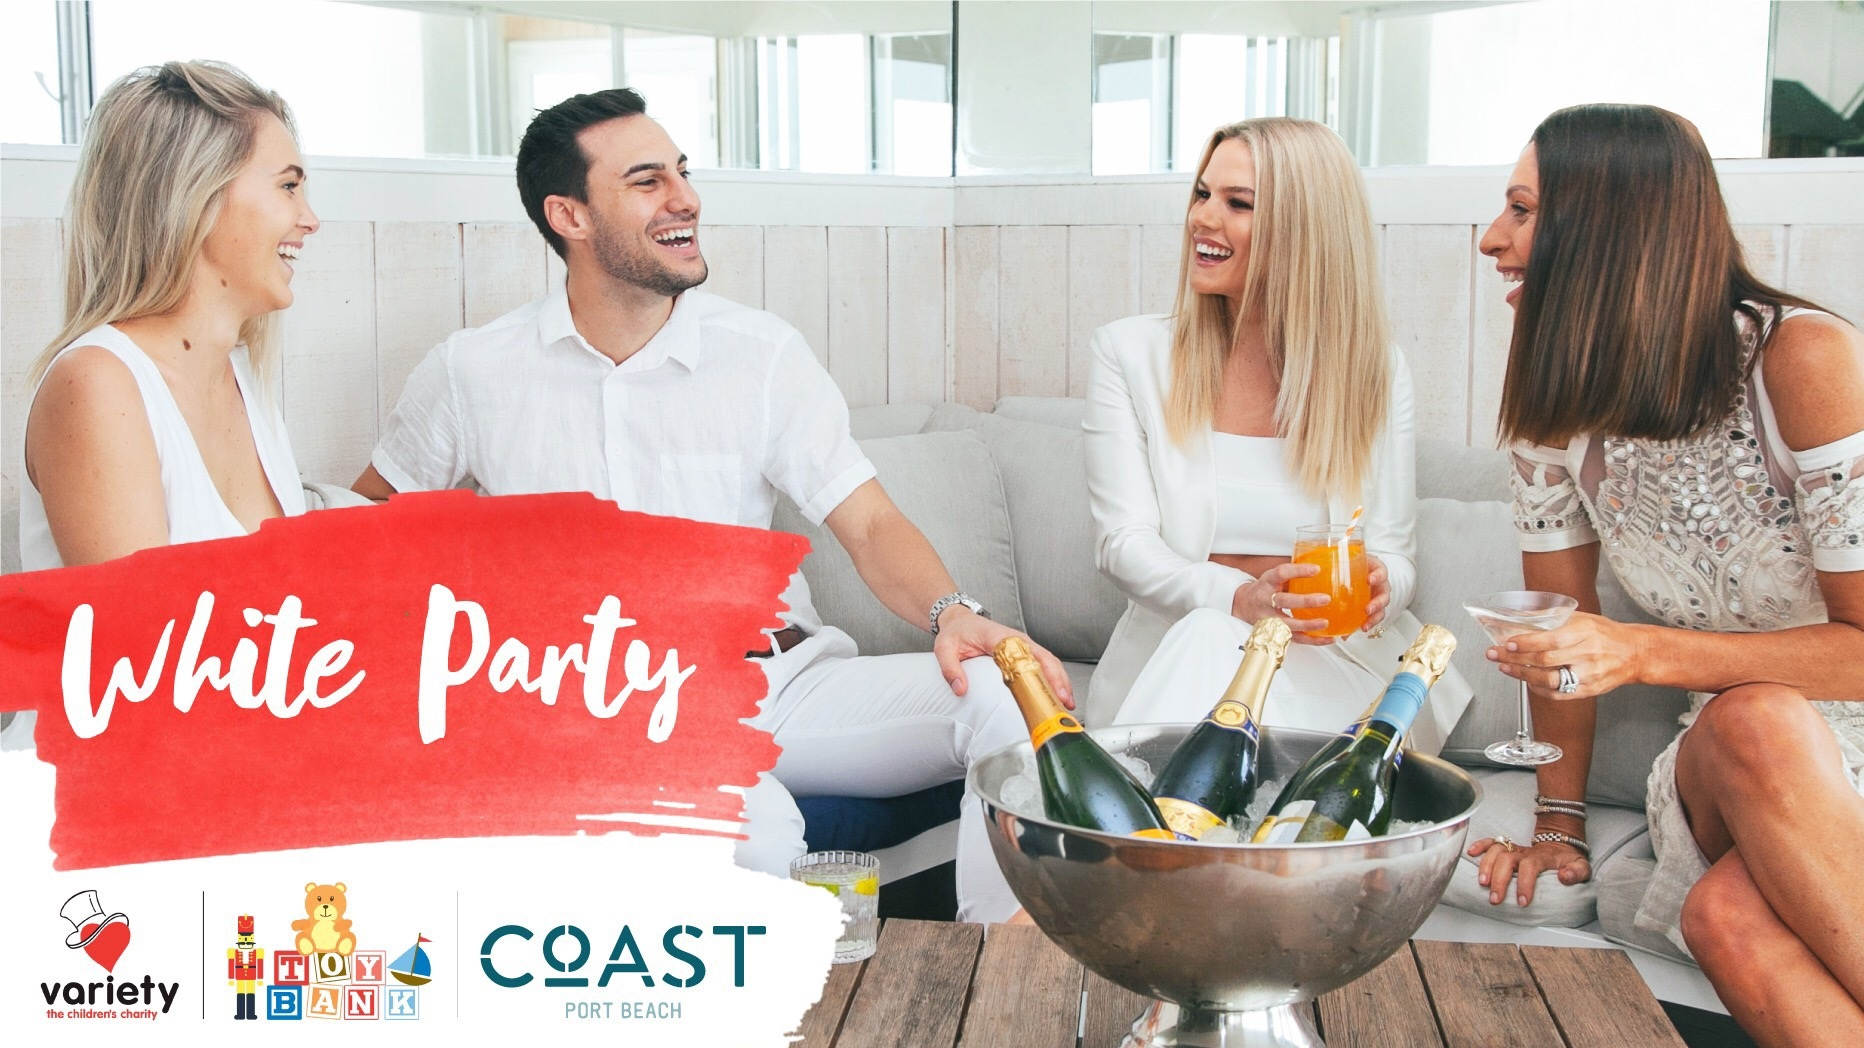 Variety+Toy+Bank+White+Party+at+Coast+Port+Beach